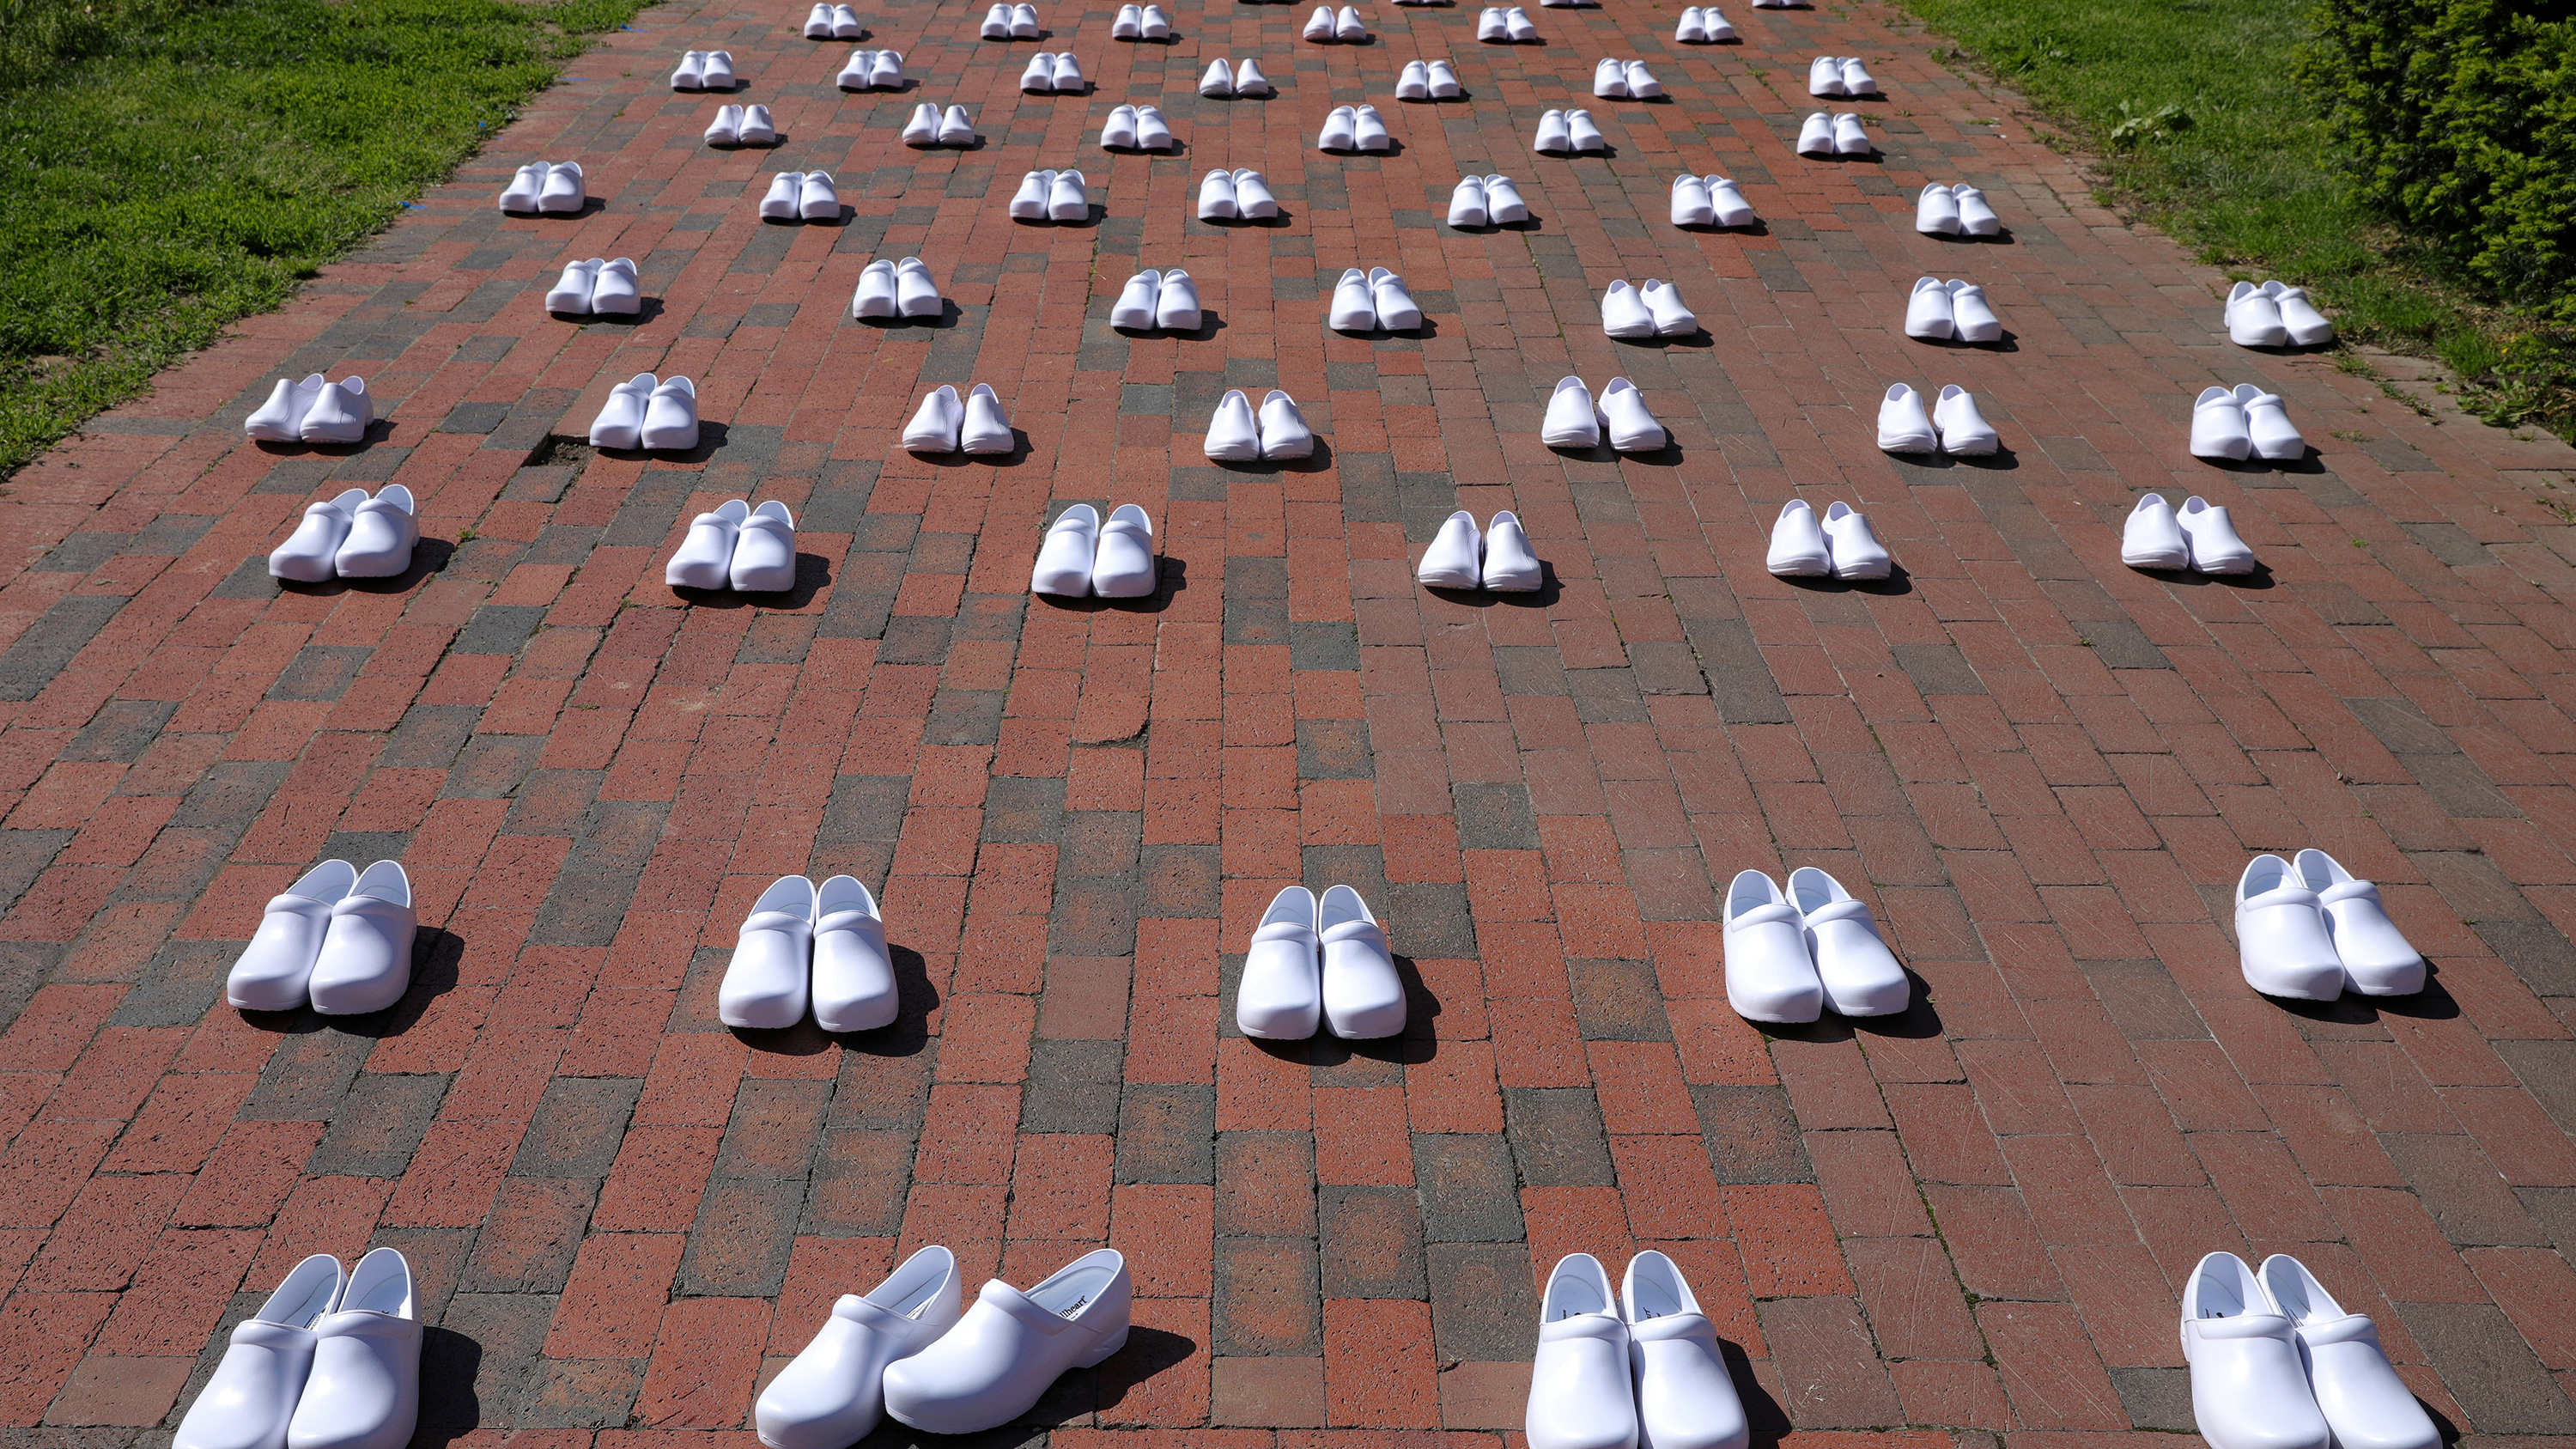 The photo shows an array of white shoes lined up along a paved path. One pair in the front is slightly askew.